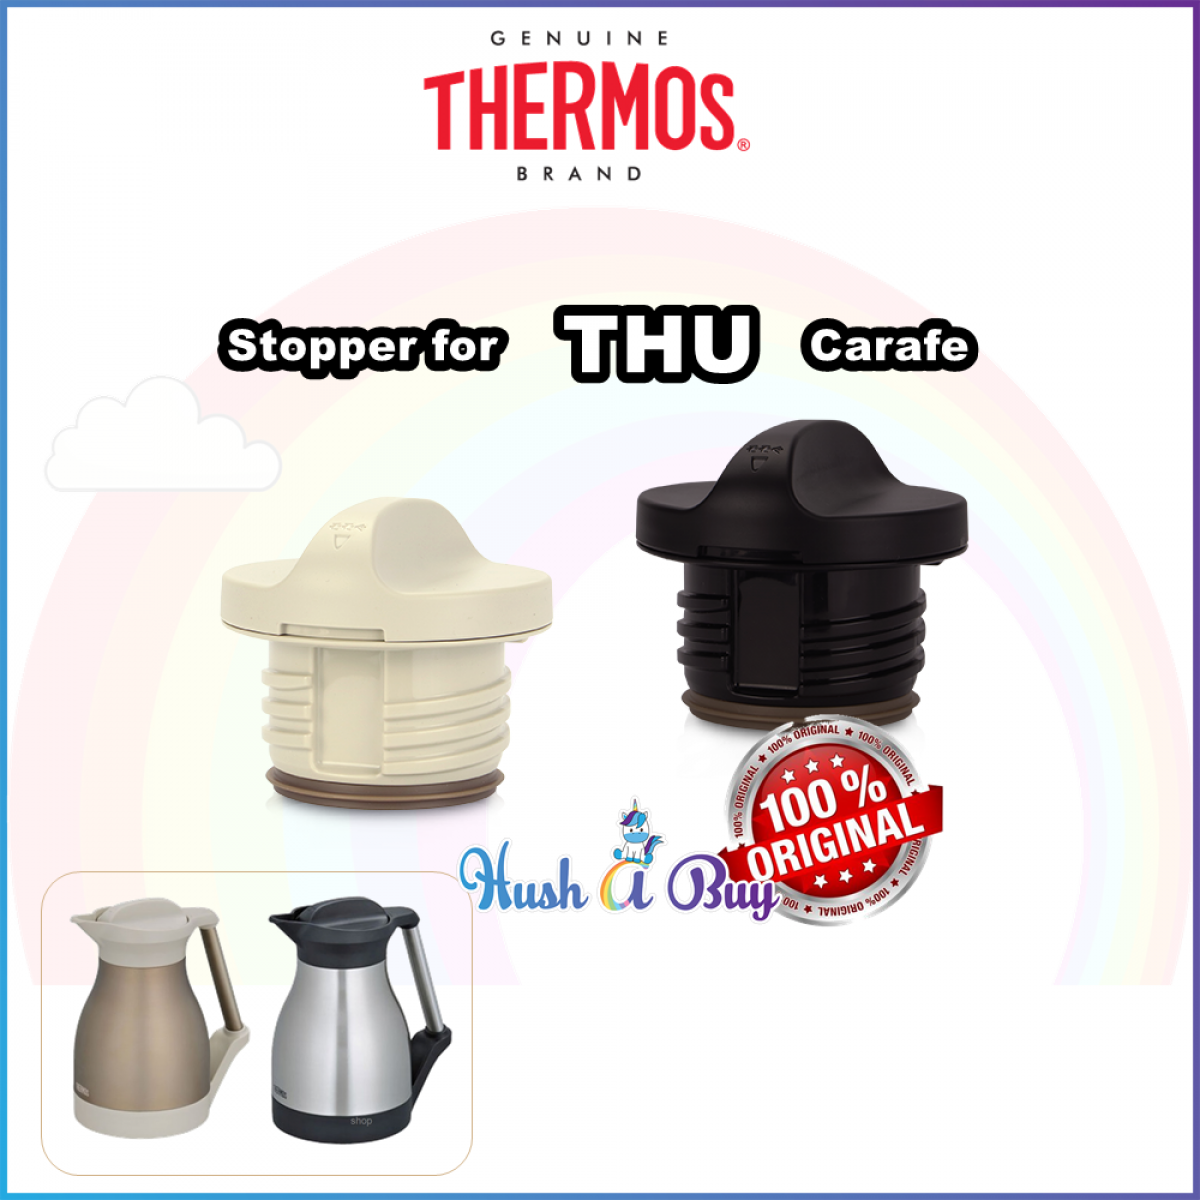 Thermos Spare Part - THU Series Stopper - Carafe Head